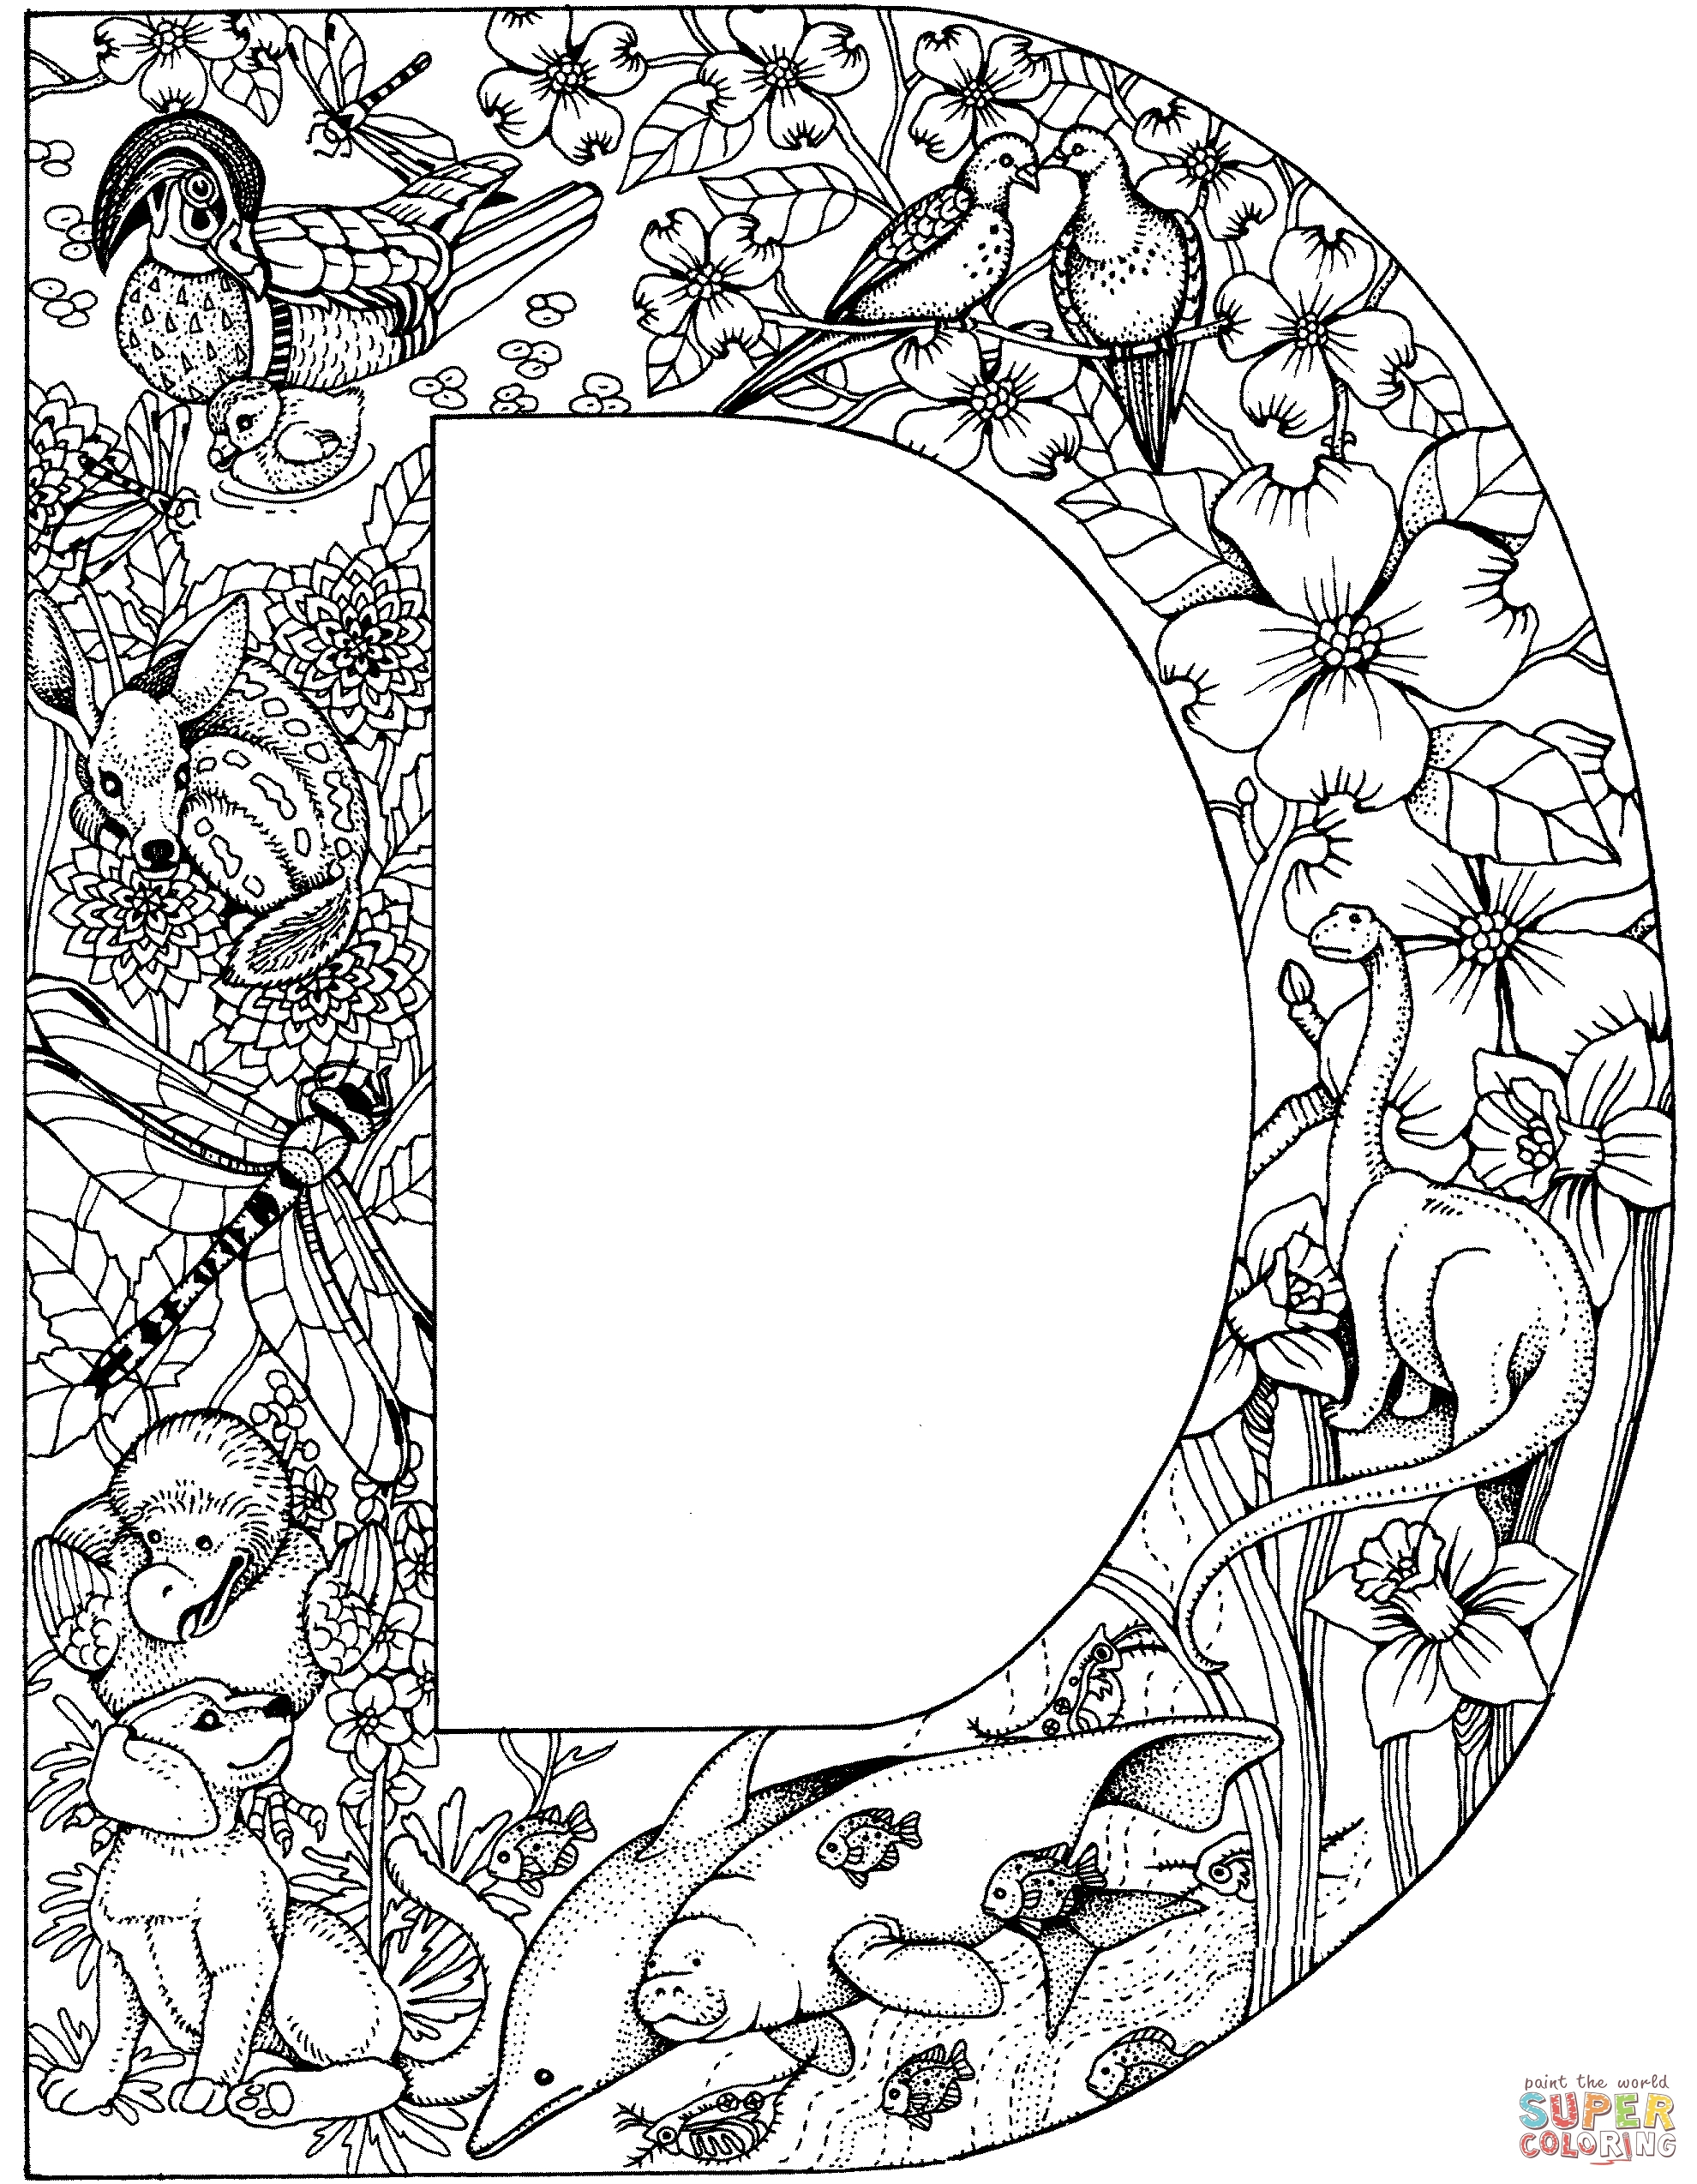 moana printable coloring pages - coloring pages letters adult